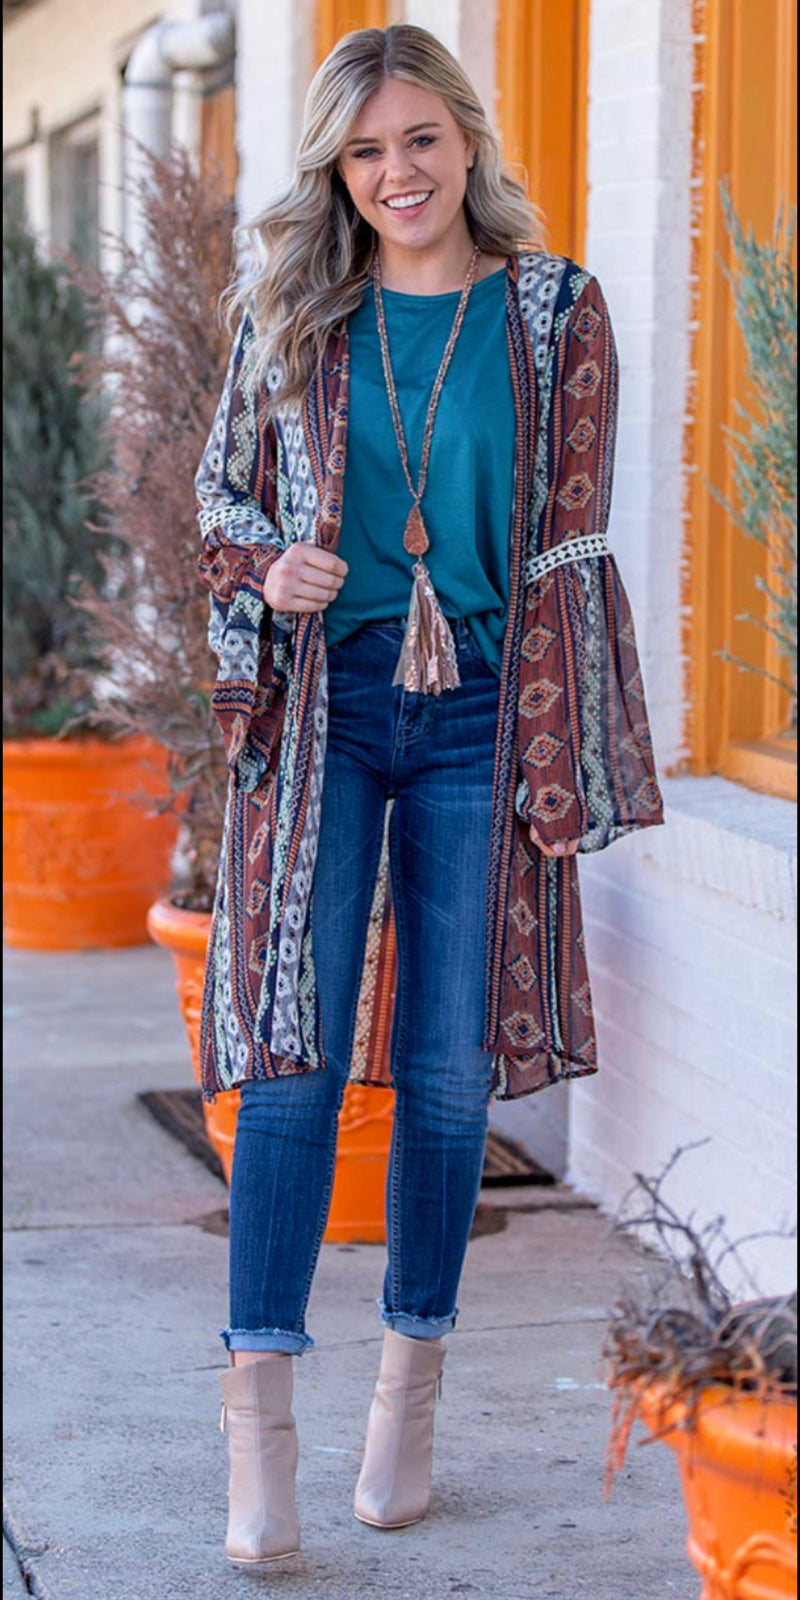 The Headliner Aztec Kimono - Also in Plus Size